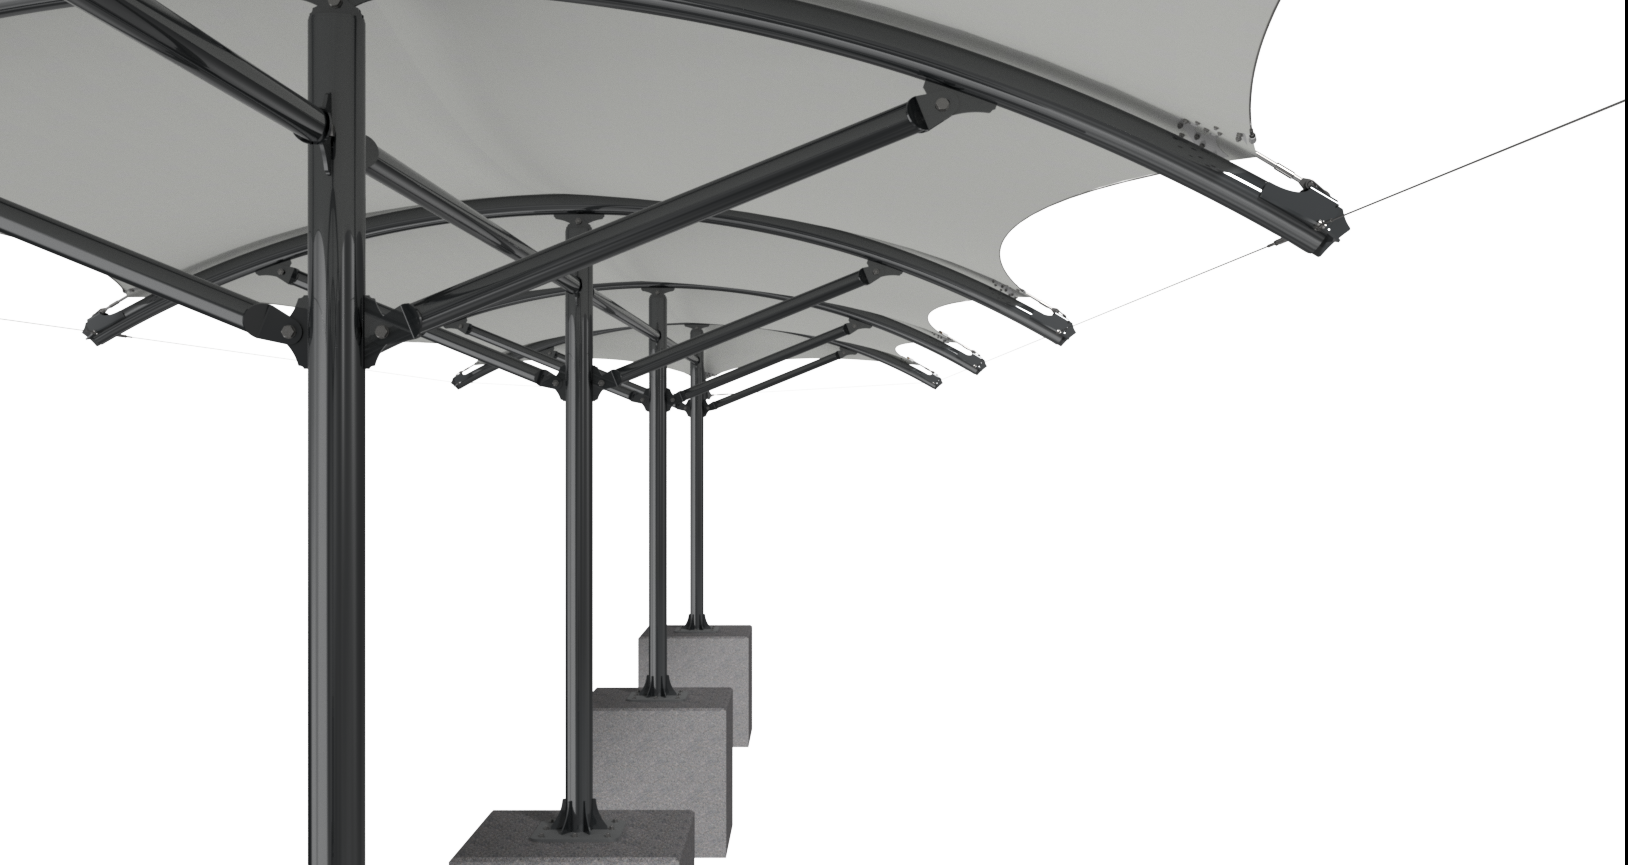 carport A - Person perspective